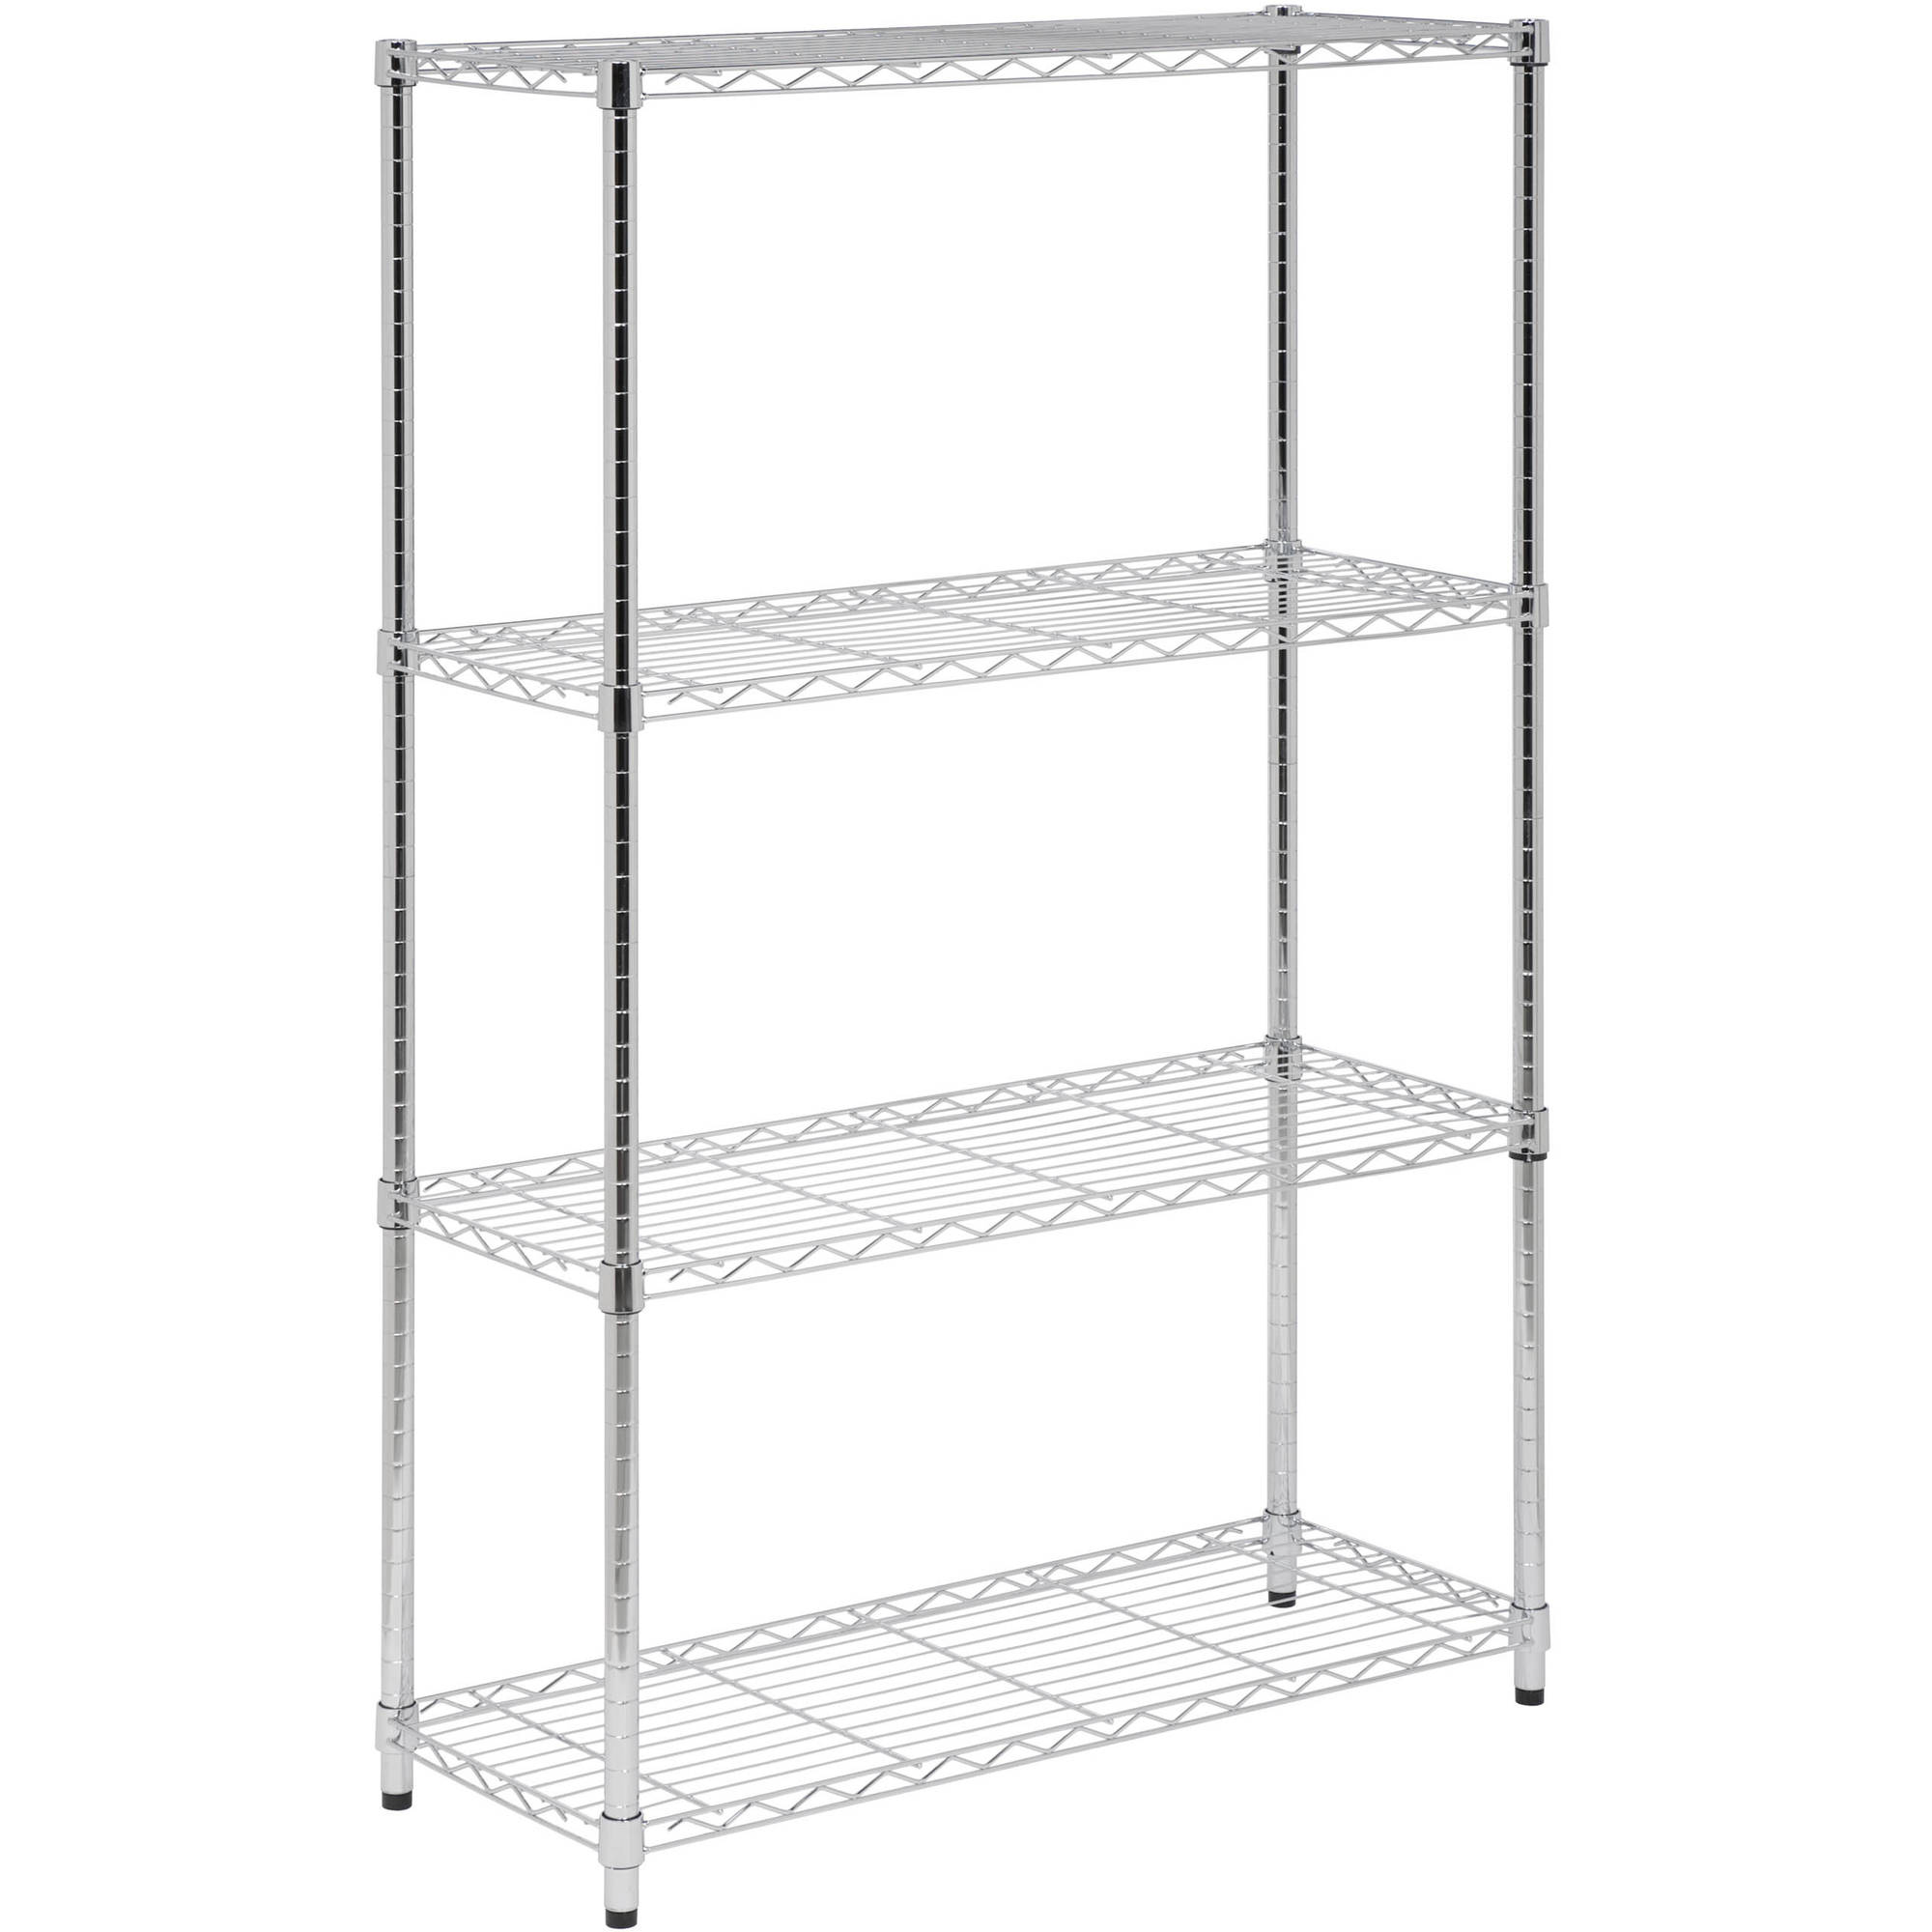 Honey Can Do 4 Shelf Steel Storage Shelving Unit, Chrome